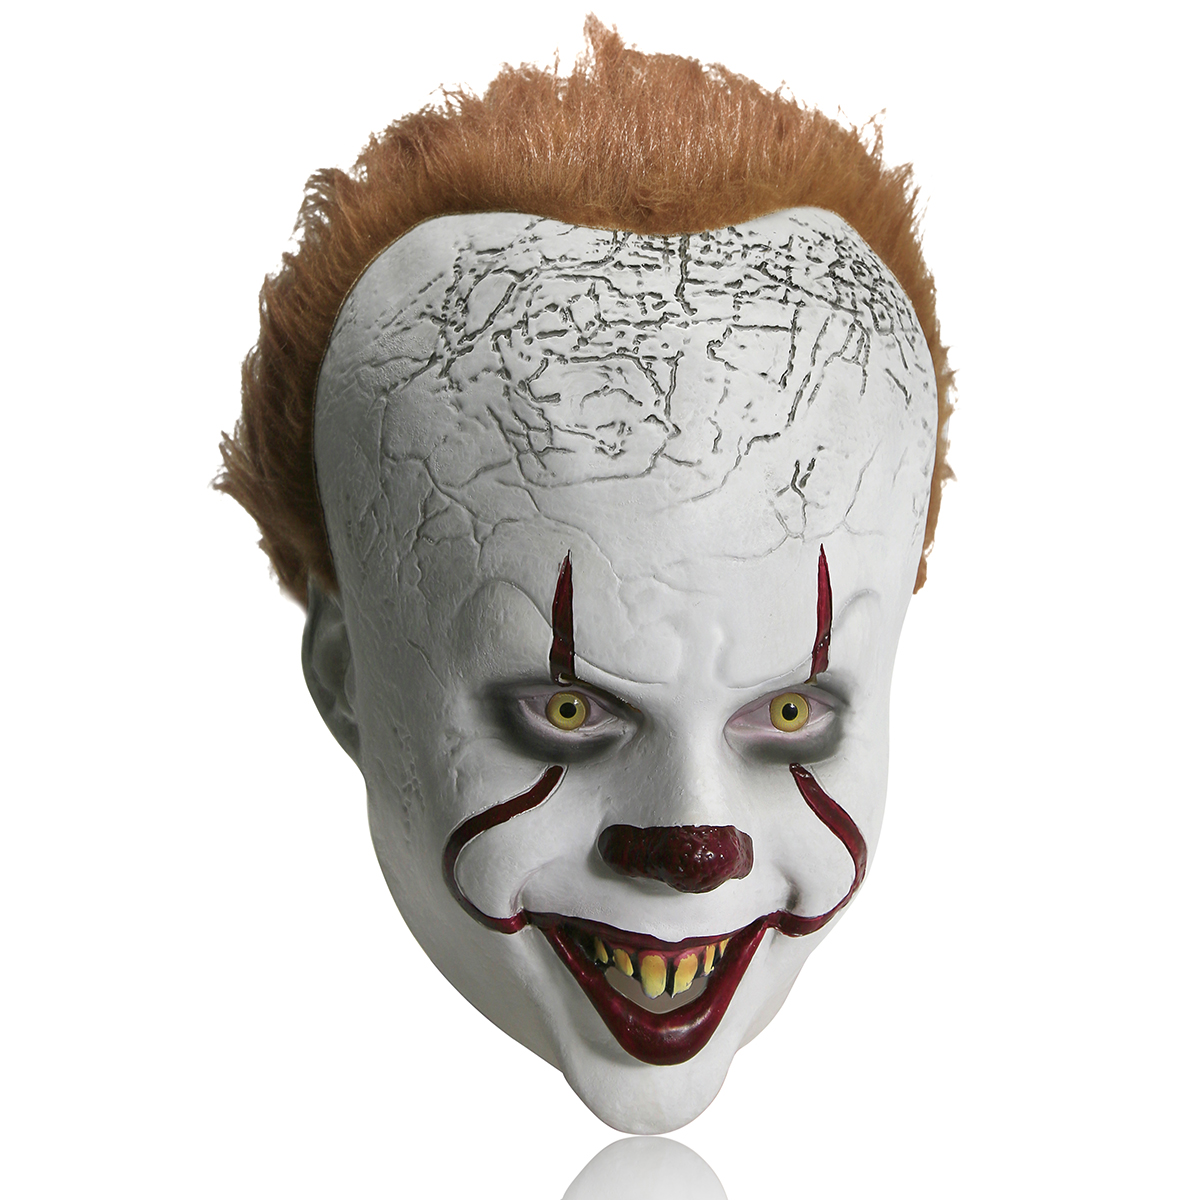 Halloween Pennywise Scary Clown Maske Kostüm Cosplay Party Dekoration Halloween Prop Erwachsene Kinder Spielzeug Trick Clown Maske